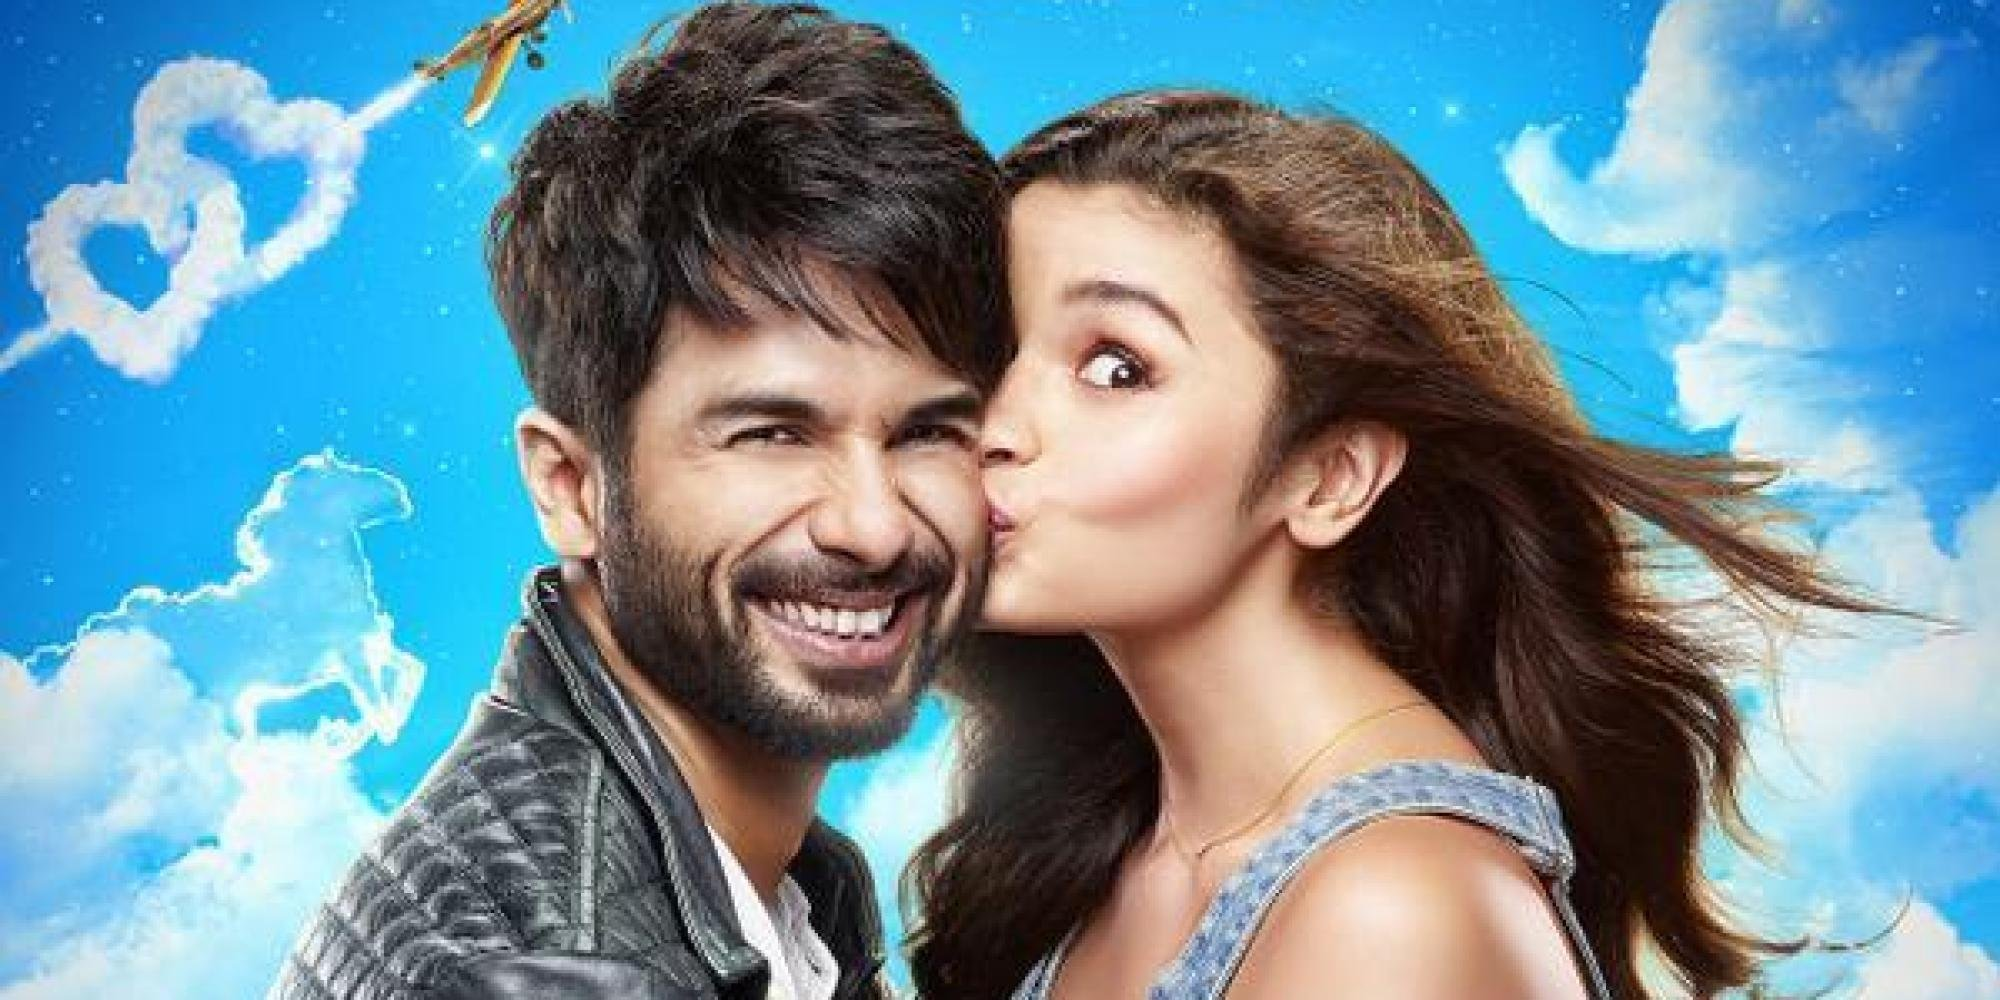 Double wedding soundtrack - Amit Trivedi S Music Did Keep The Grand Indian Wedding Spirit Alive In Its Soundtrack And We Thank Him For It